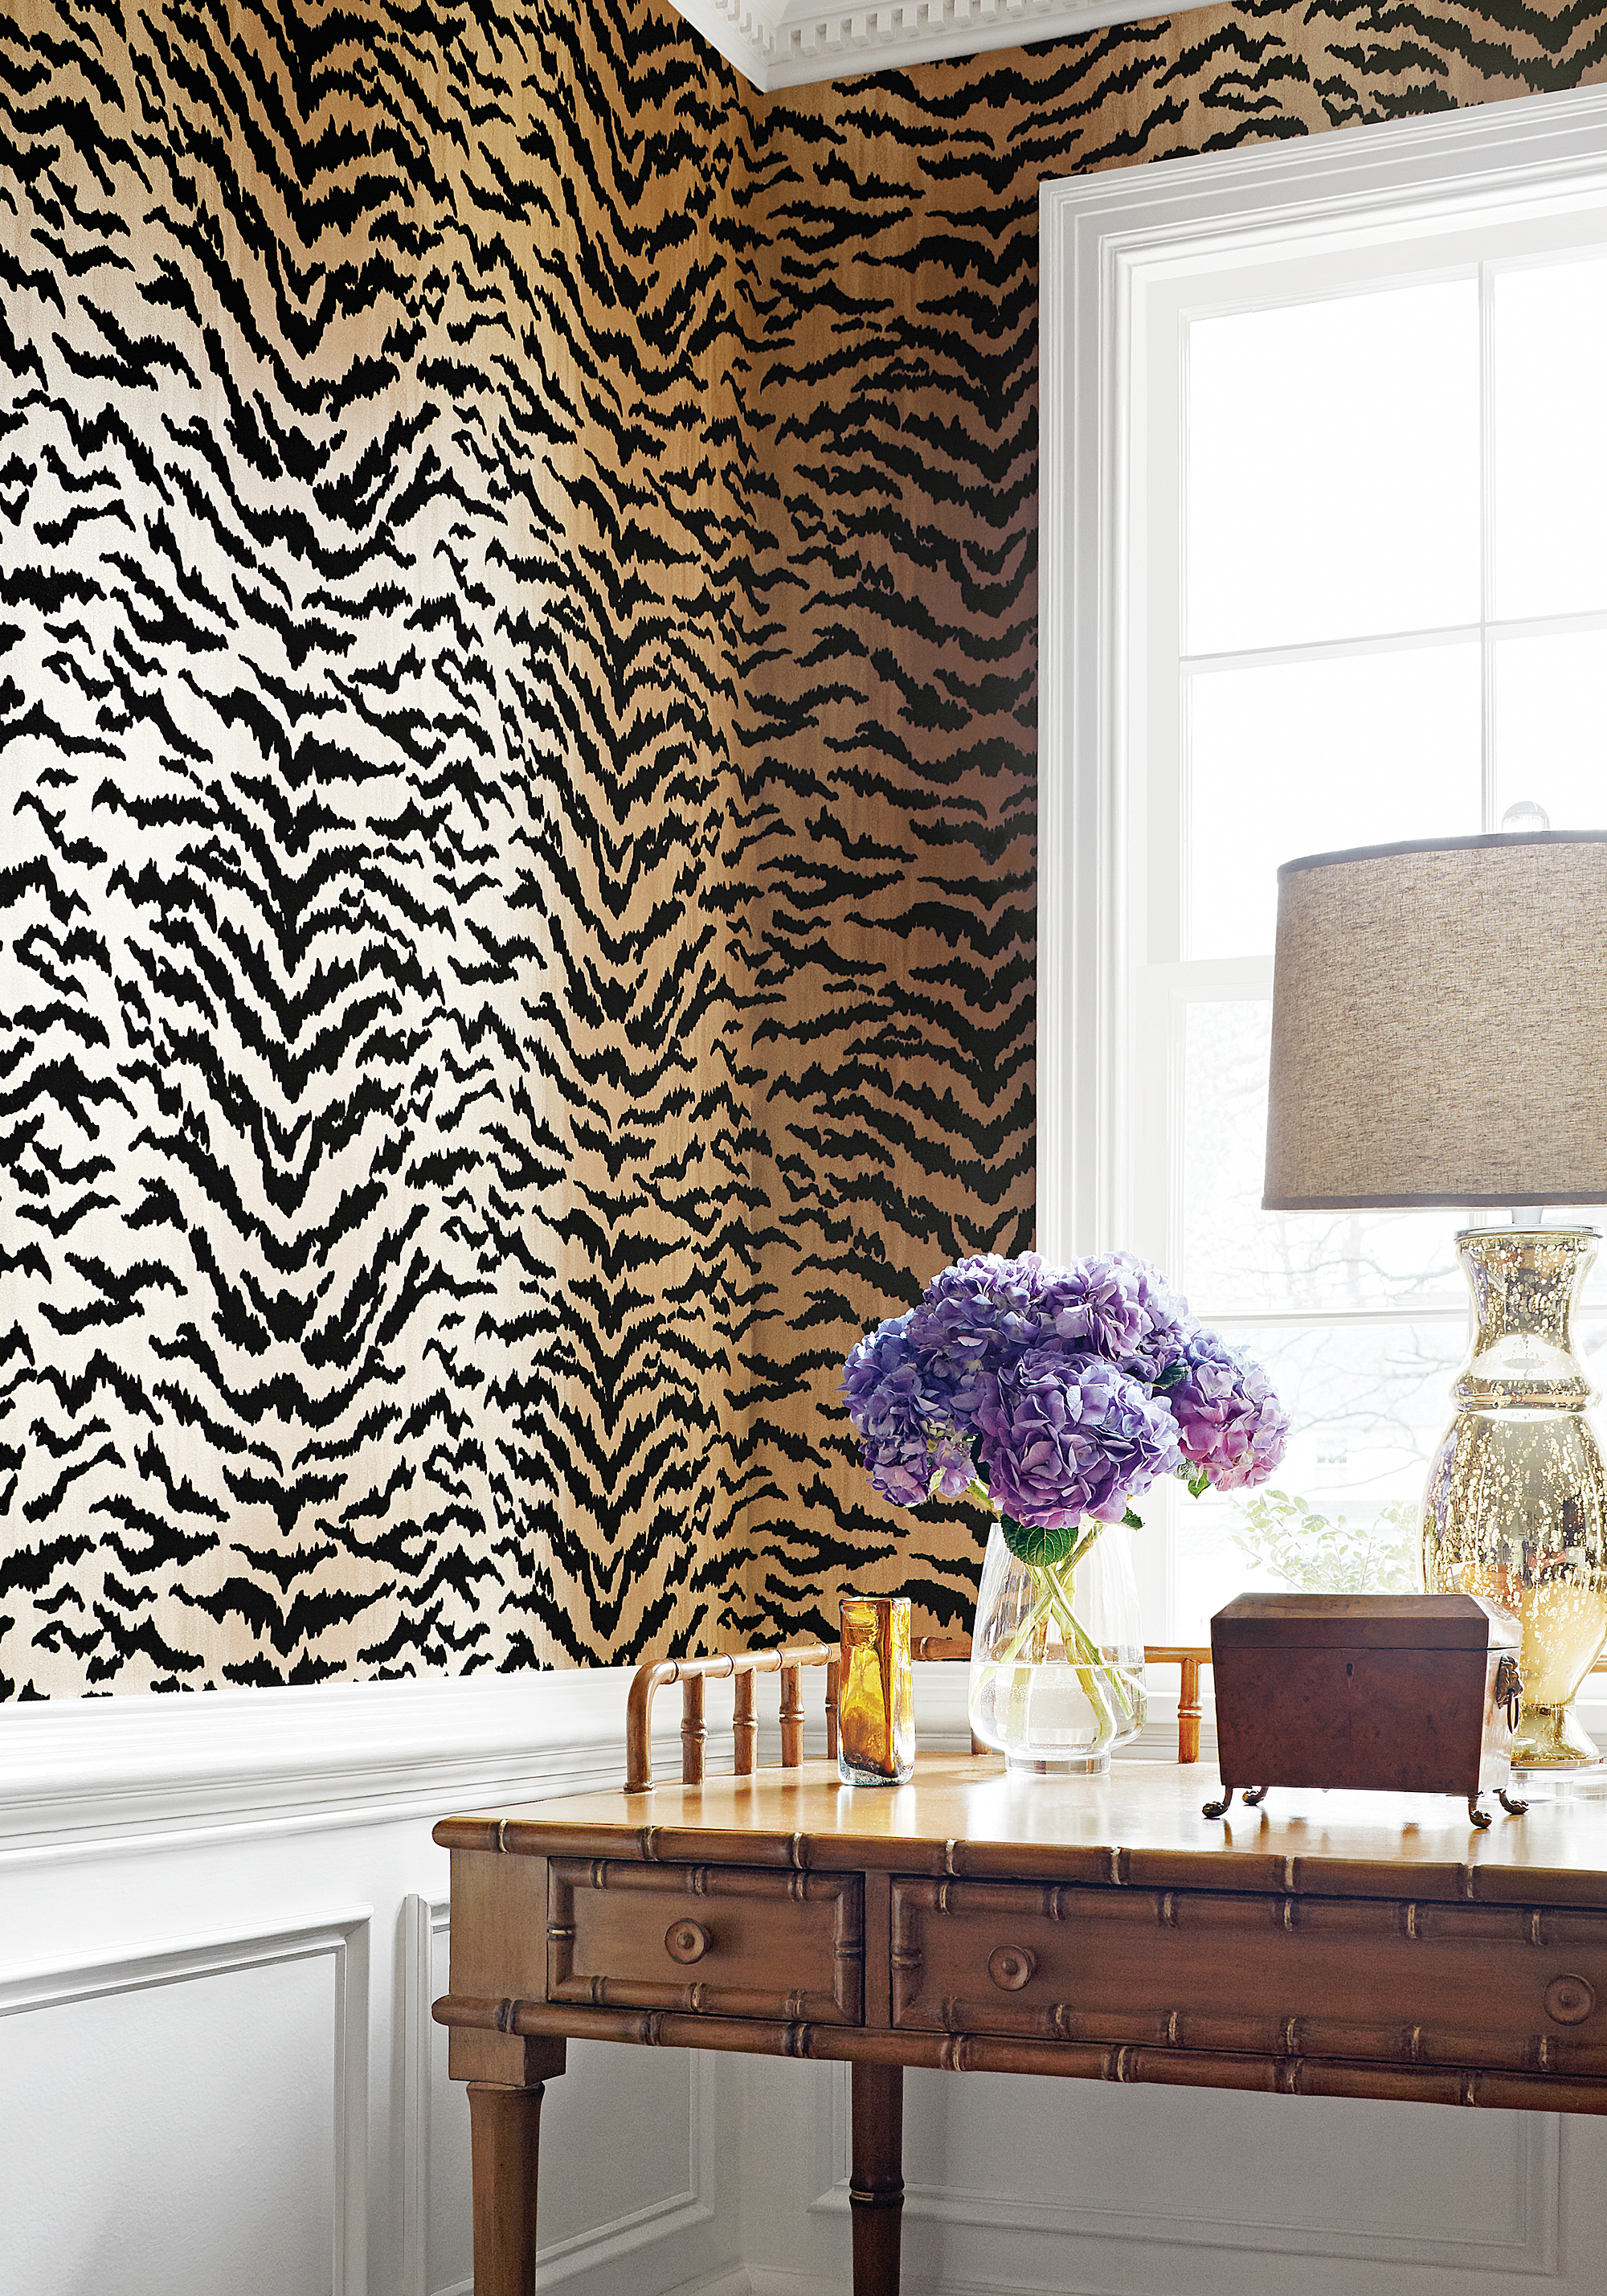 Amazing animal print wallpaper ideas shoproomideas for Home wallpaper designs 2013